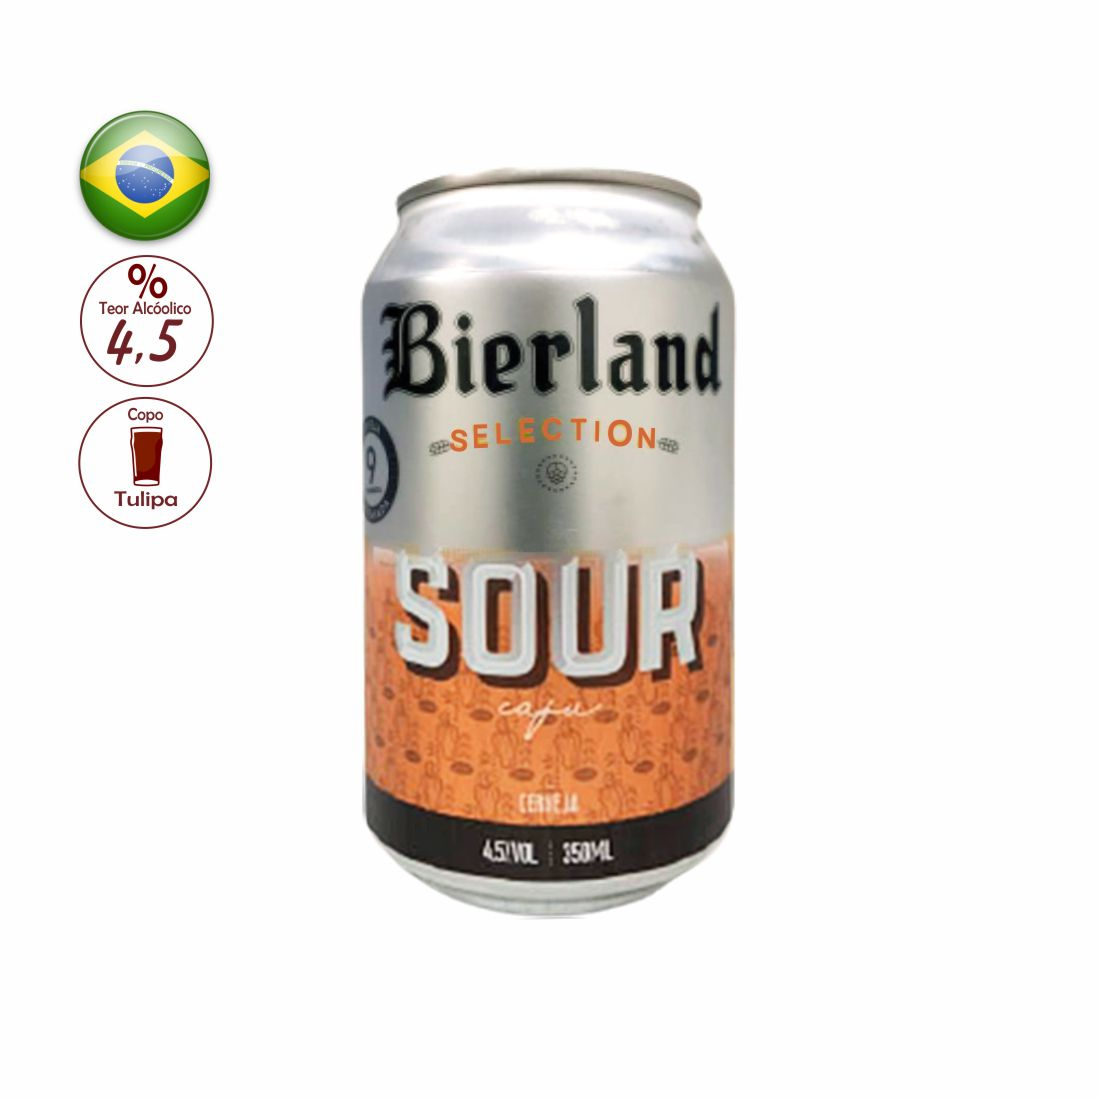 CERVEJA BIERLAND 350ML SELECTION SOUR CAJÚ